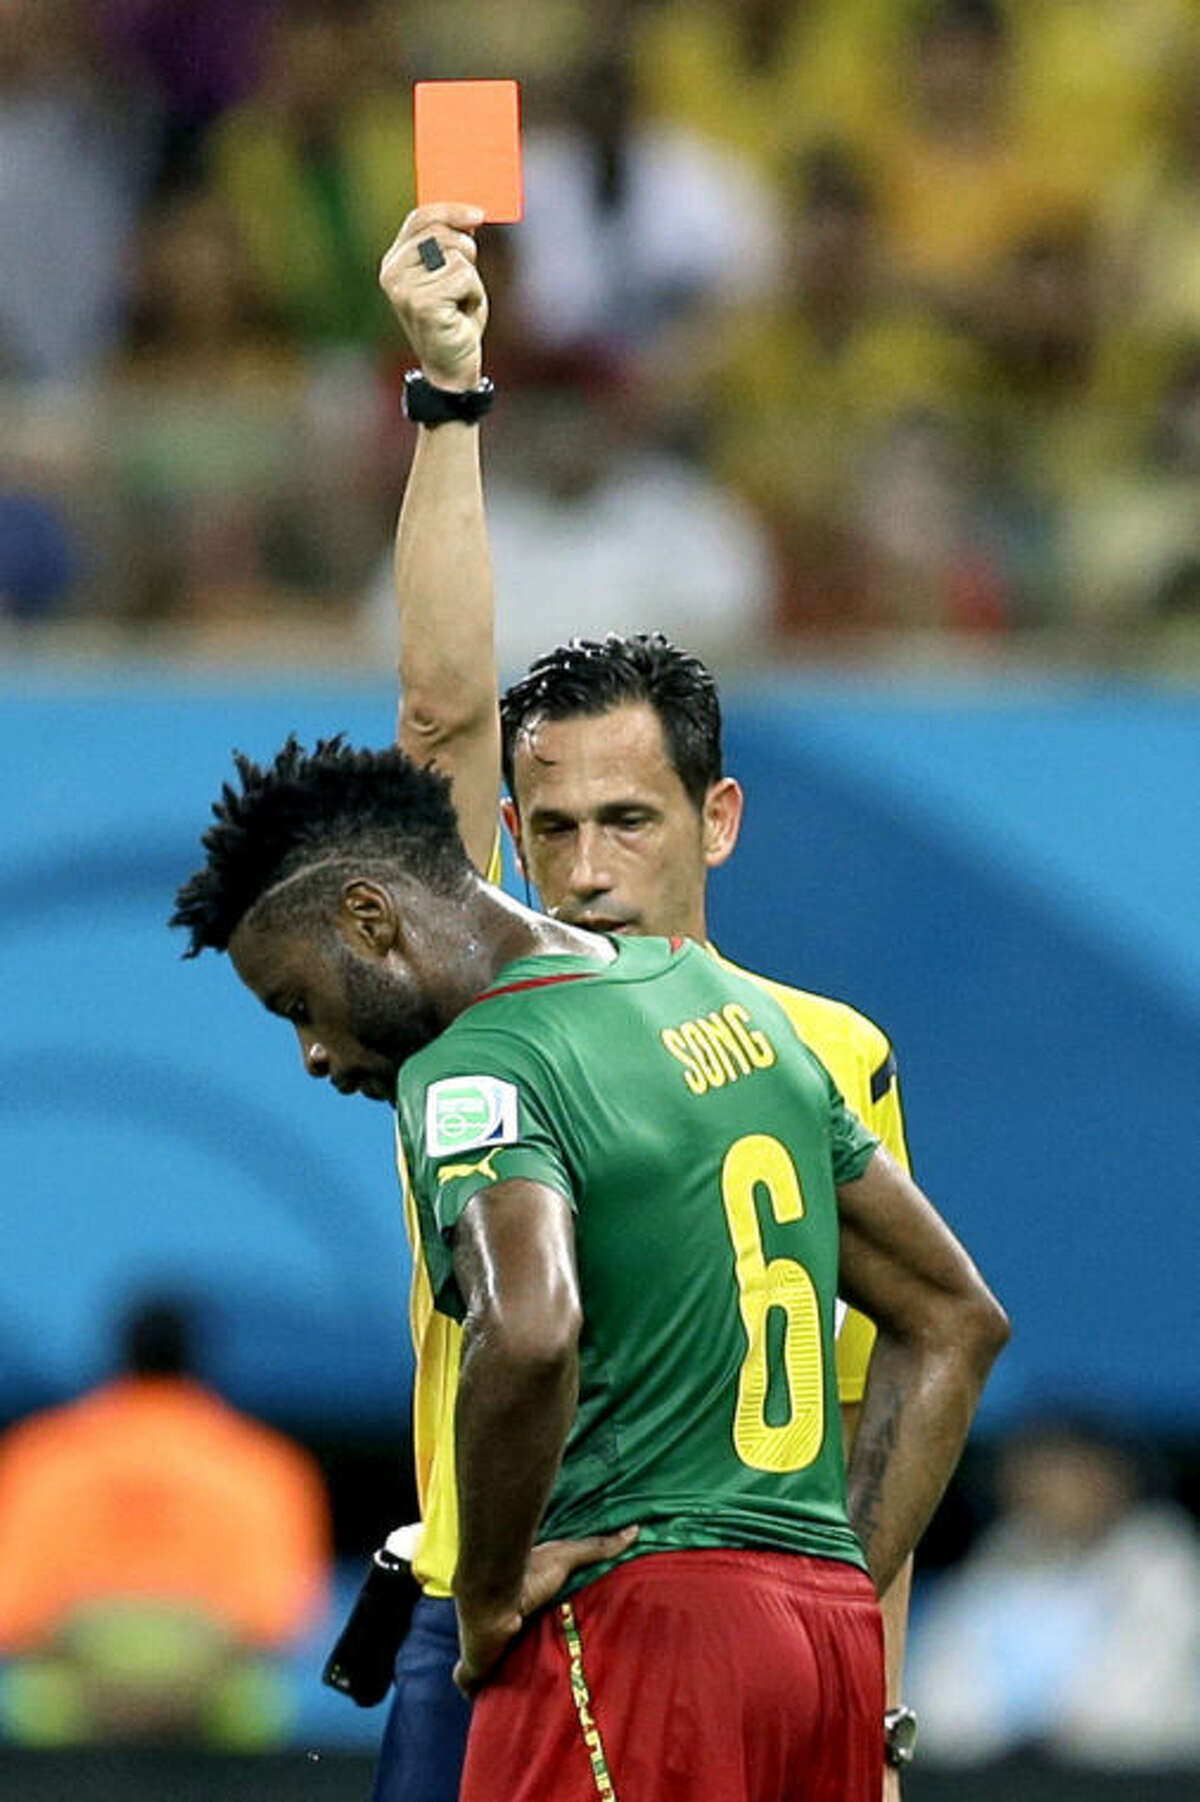 FILE - In this Wednesday, June 18, 2014 file photo, referee Pedro Proenca from Portugal gives a red card to Cameroon's Alex Song during the group A World Cup soccer match between Cameroon and Croatia at the Arena da Amazonia in Manaus, Brazil. Cameroon's football federation said late Monday, June 30, 2014, it will investigate allegations of match-fixing by its team at the World Cup and the possible existence of